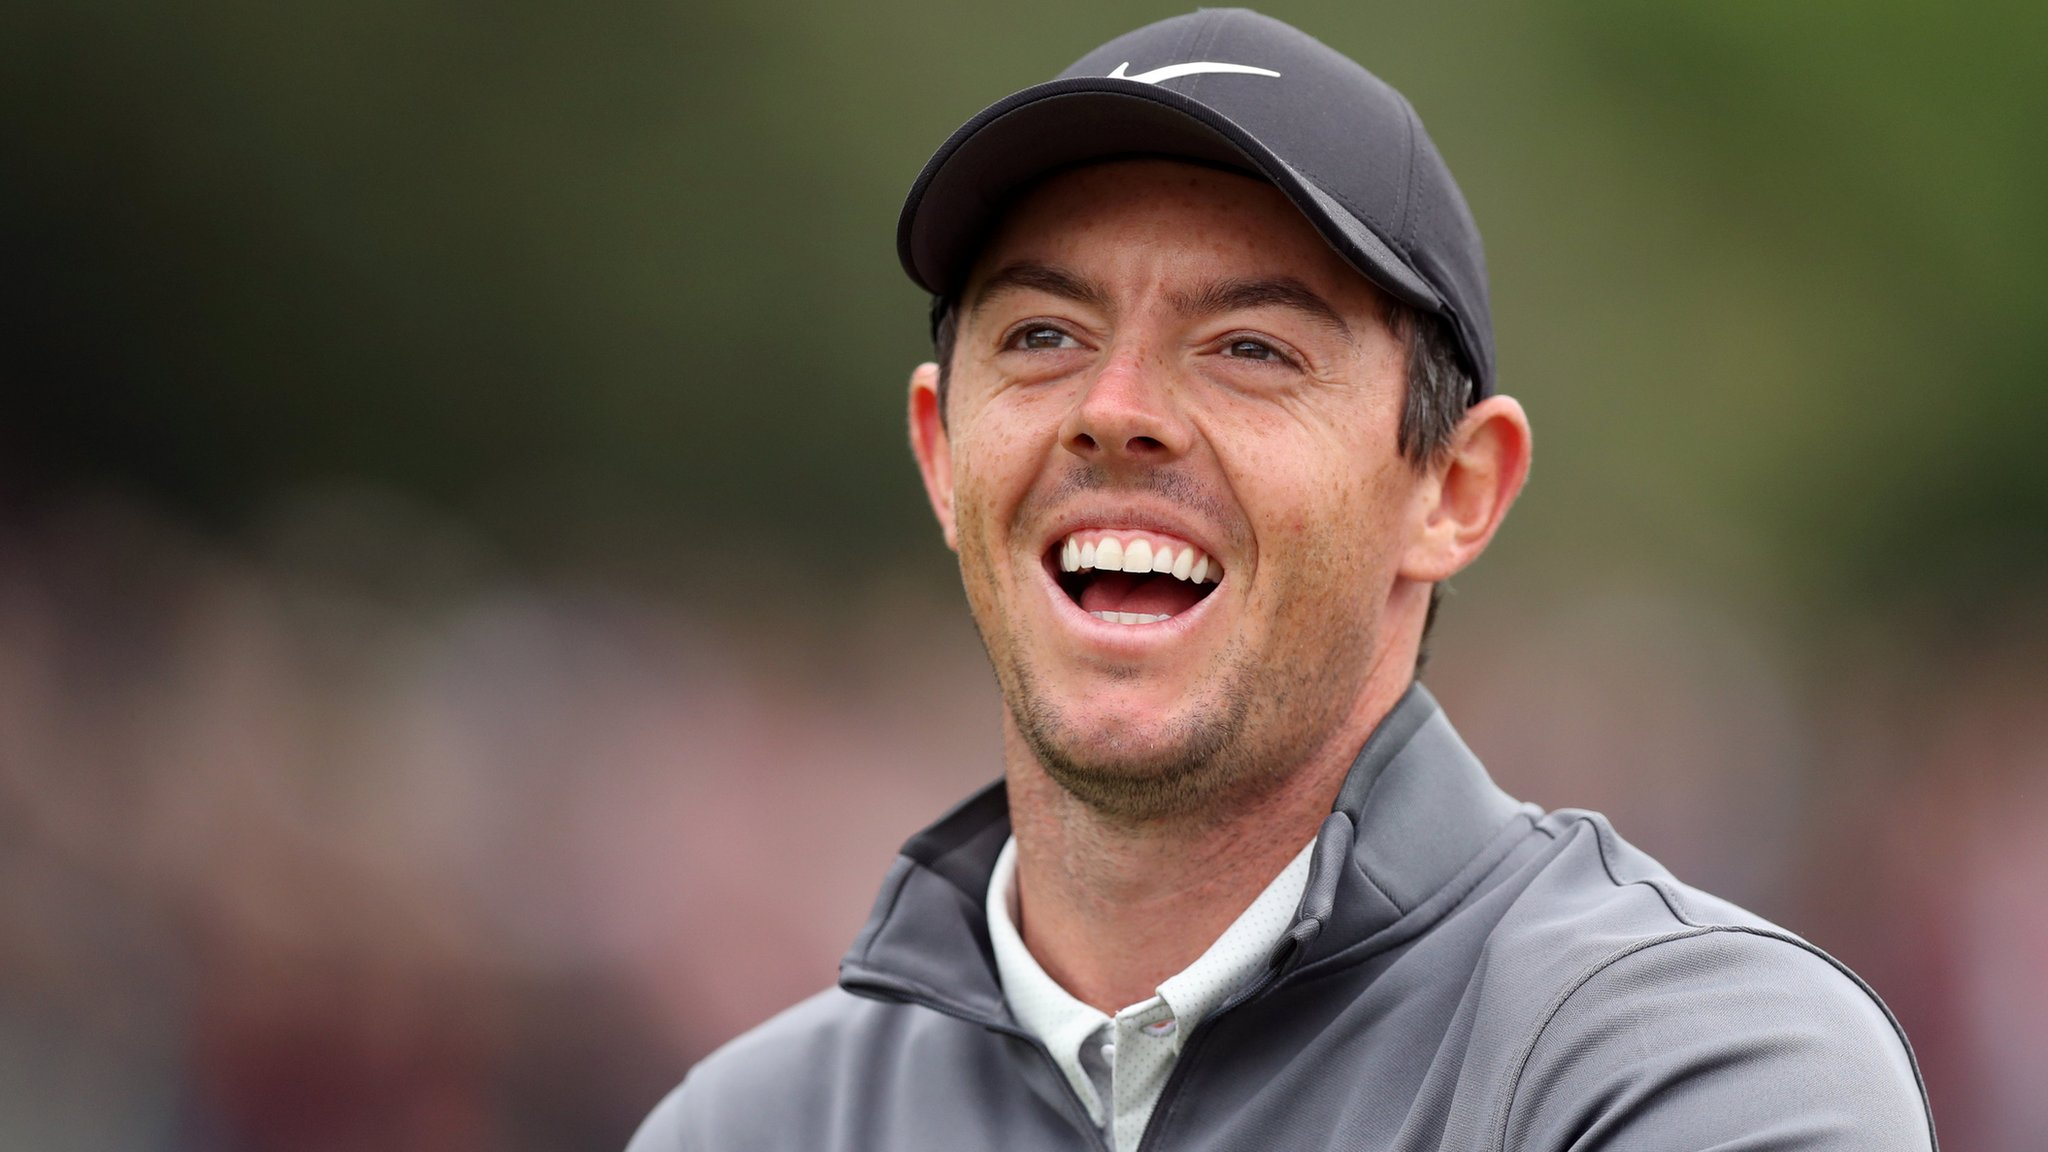 BMW PGA Championship: Rory McIlroy storms into lead at Wentworth